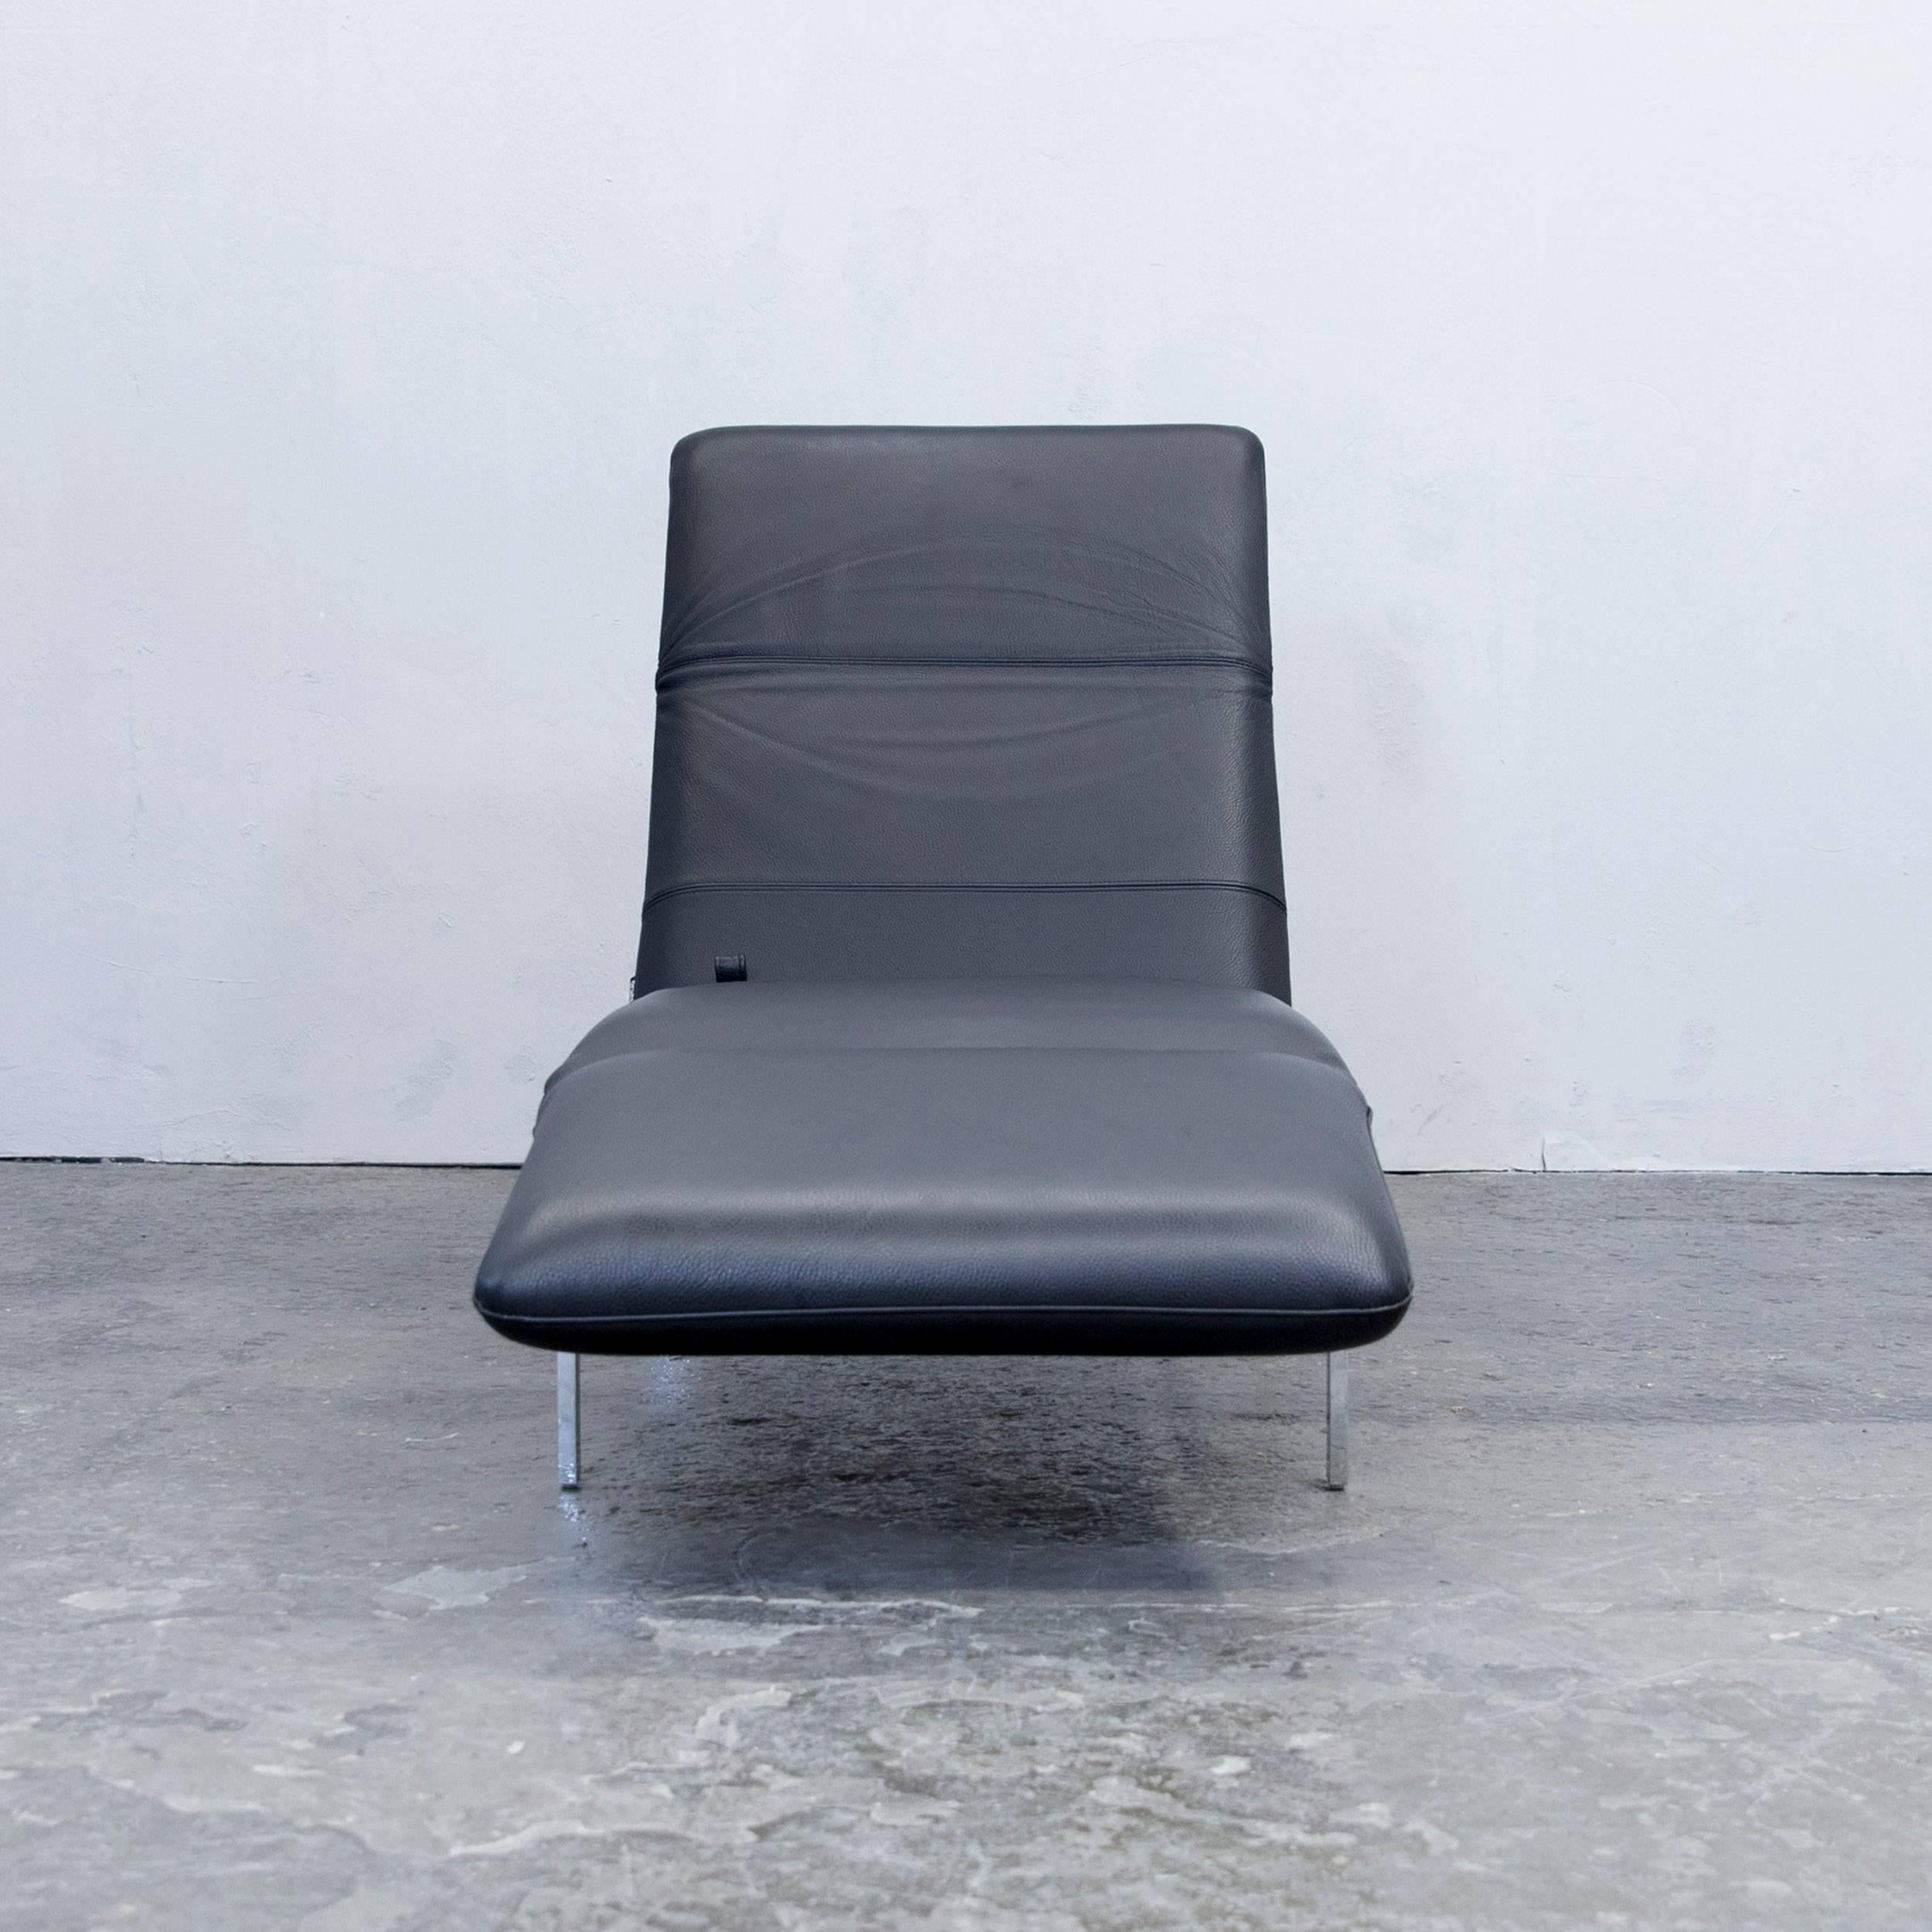 Recamiere Chaiselongue brühl and sippold roro designer chaise longue recamiere leather